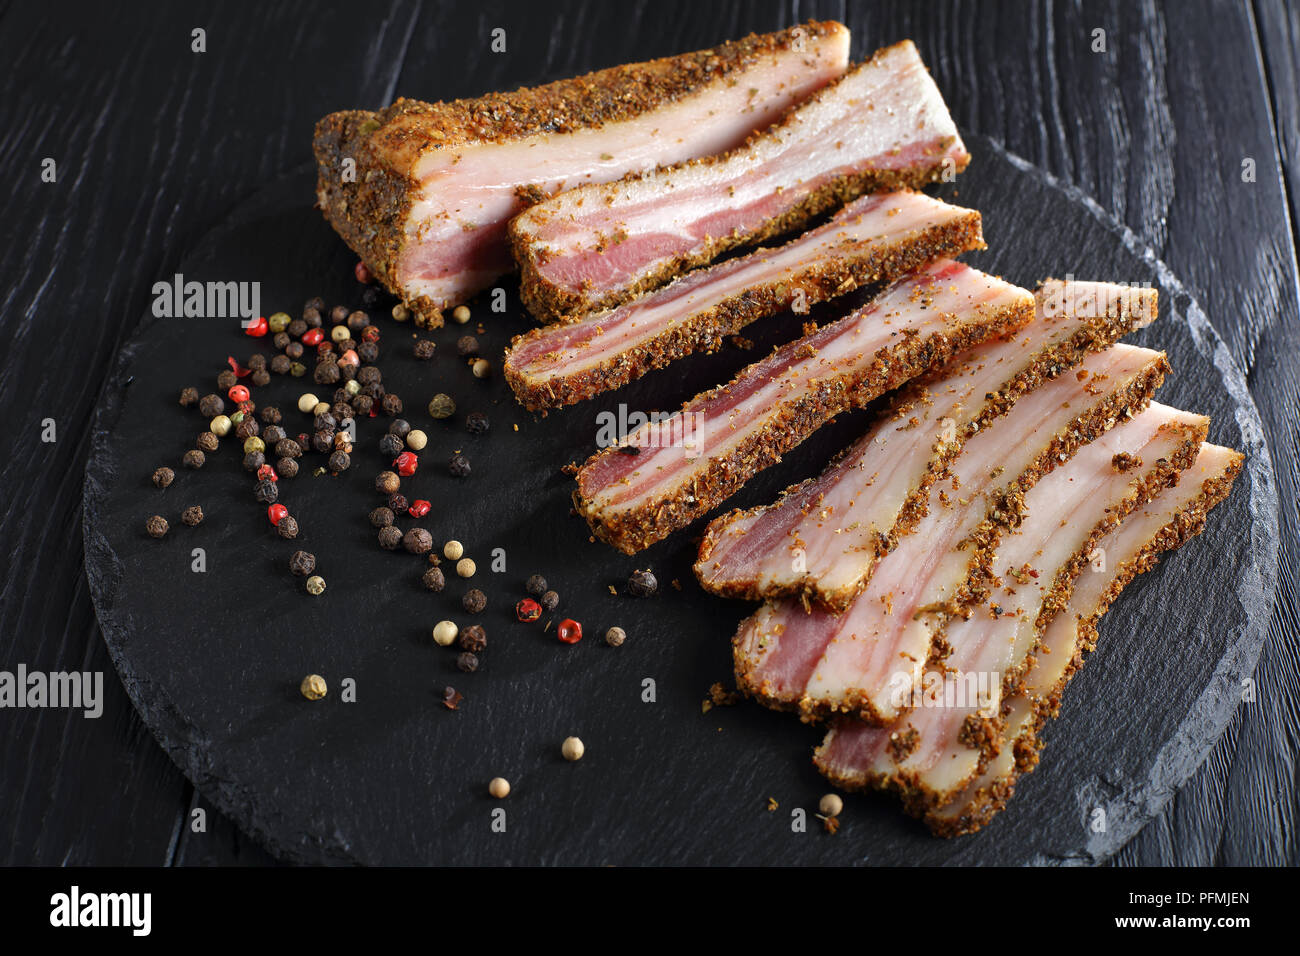 delicious spiced smoked speck cut in slices on black slate plate on wooden table, view from above, close-up Stock Photo